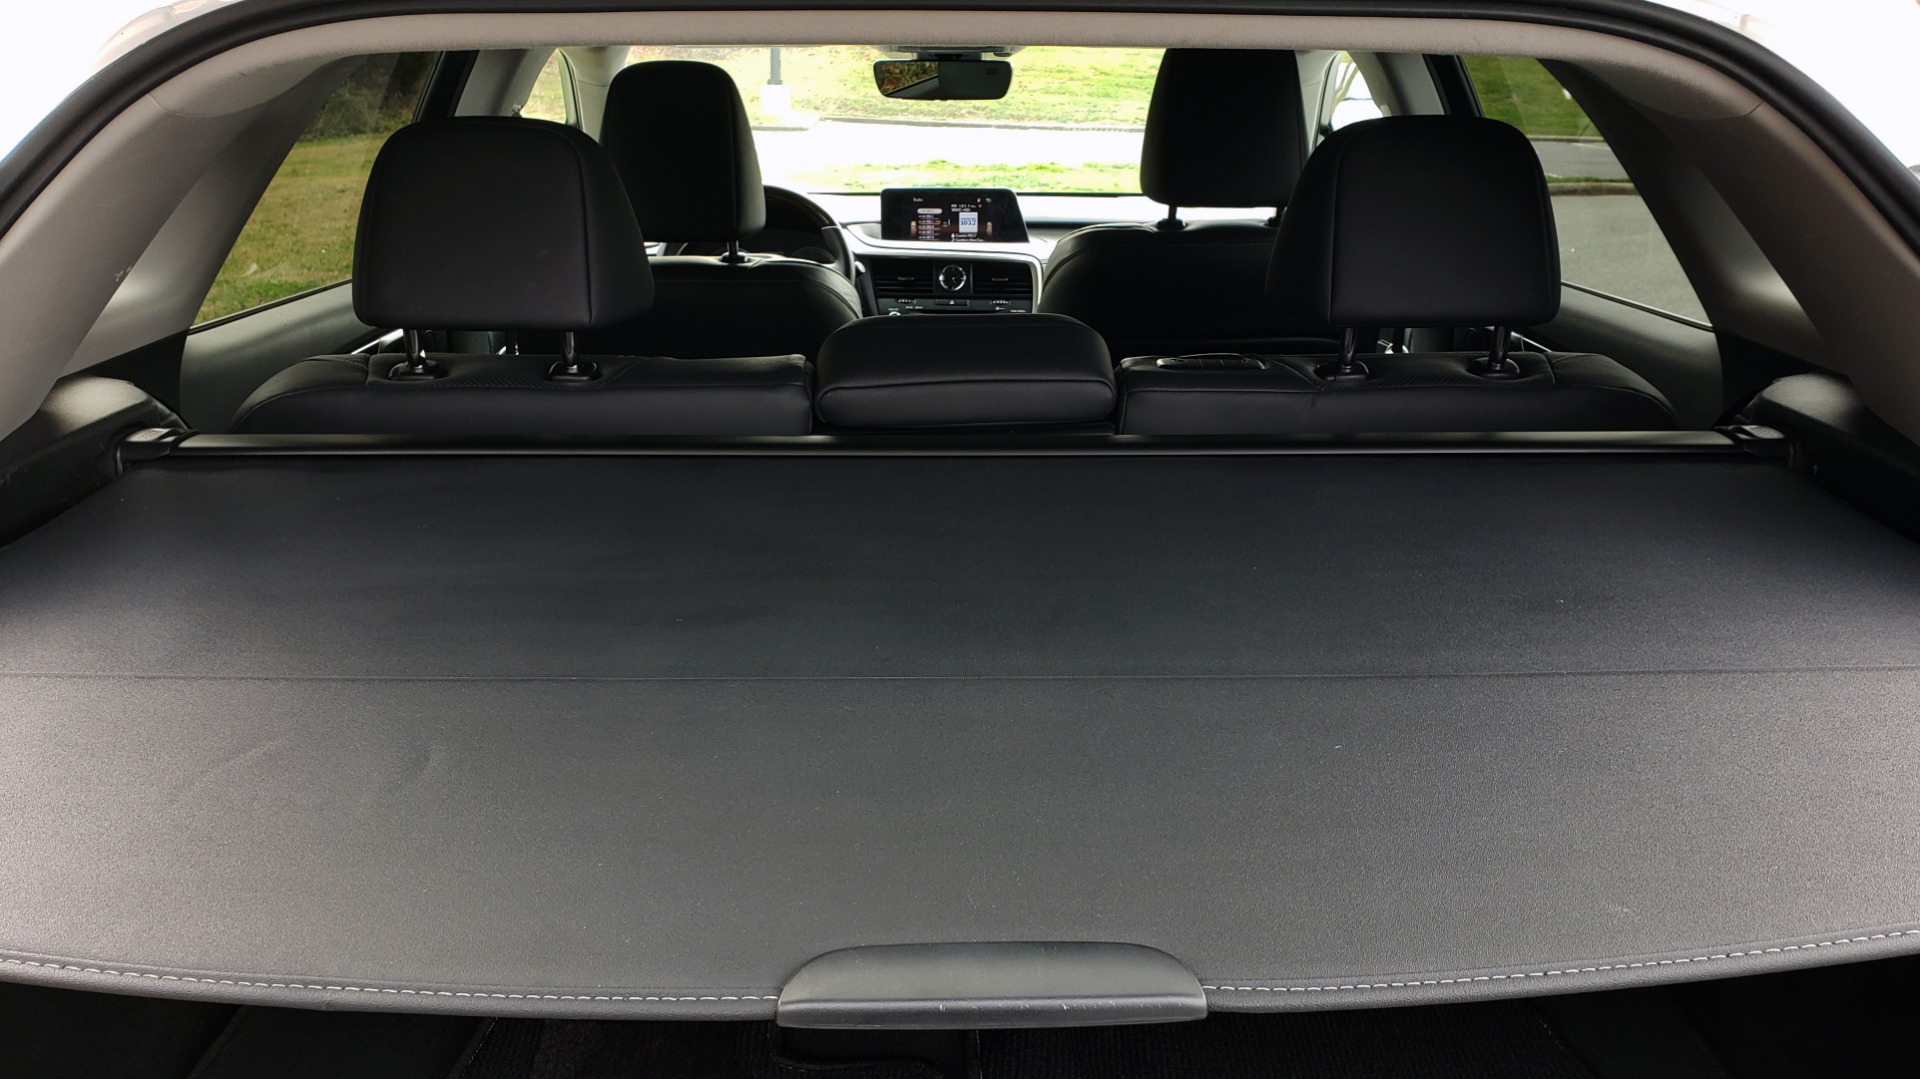 Used 2017 Lexus RX 350 PREMIUM / BSM / SNRF / VENT SEATS / REARVIEW for sale Sold at Formula Imports in Charlotte NC 28227 15